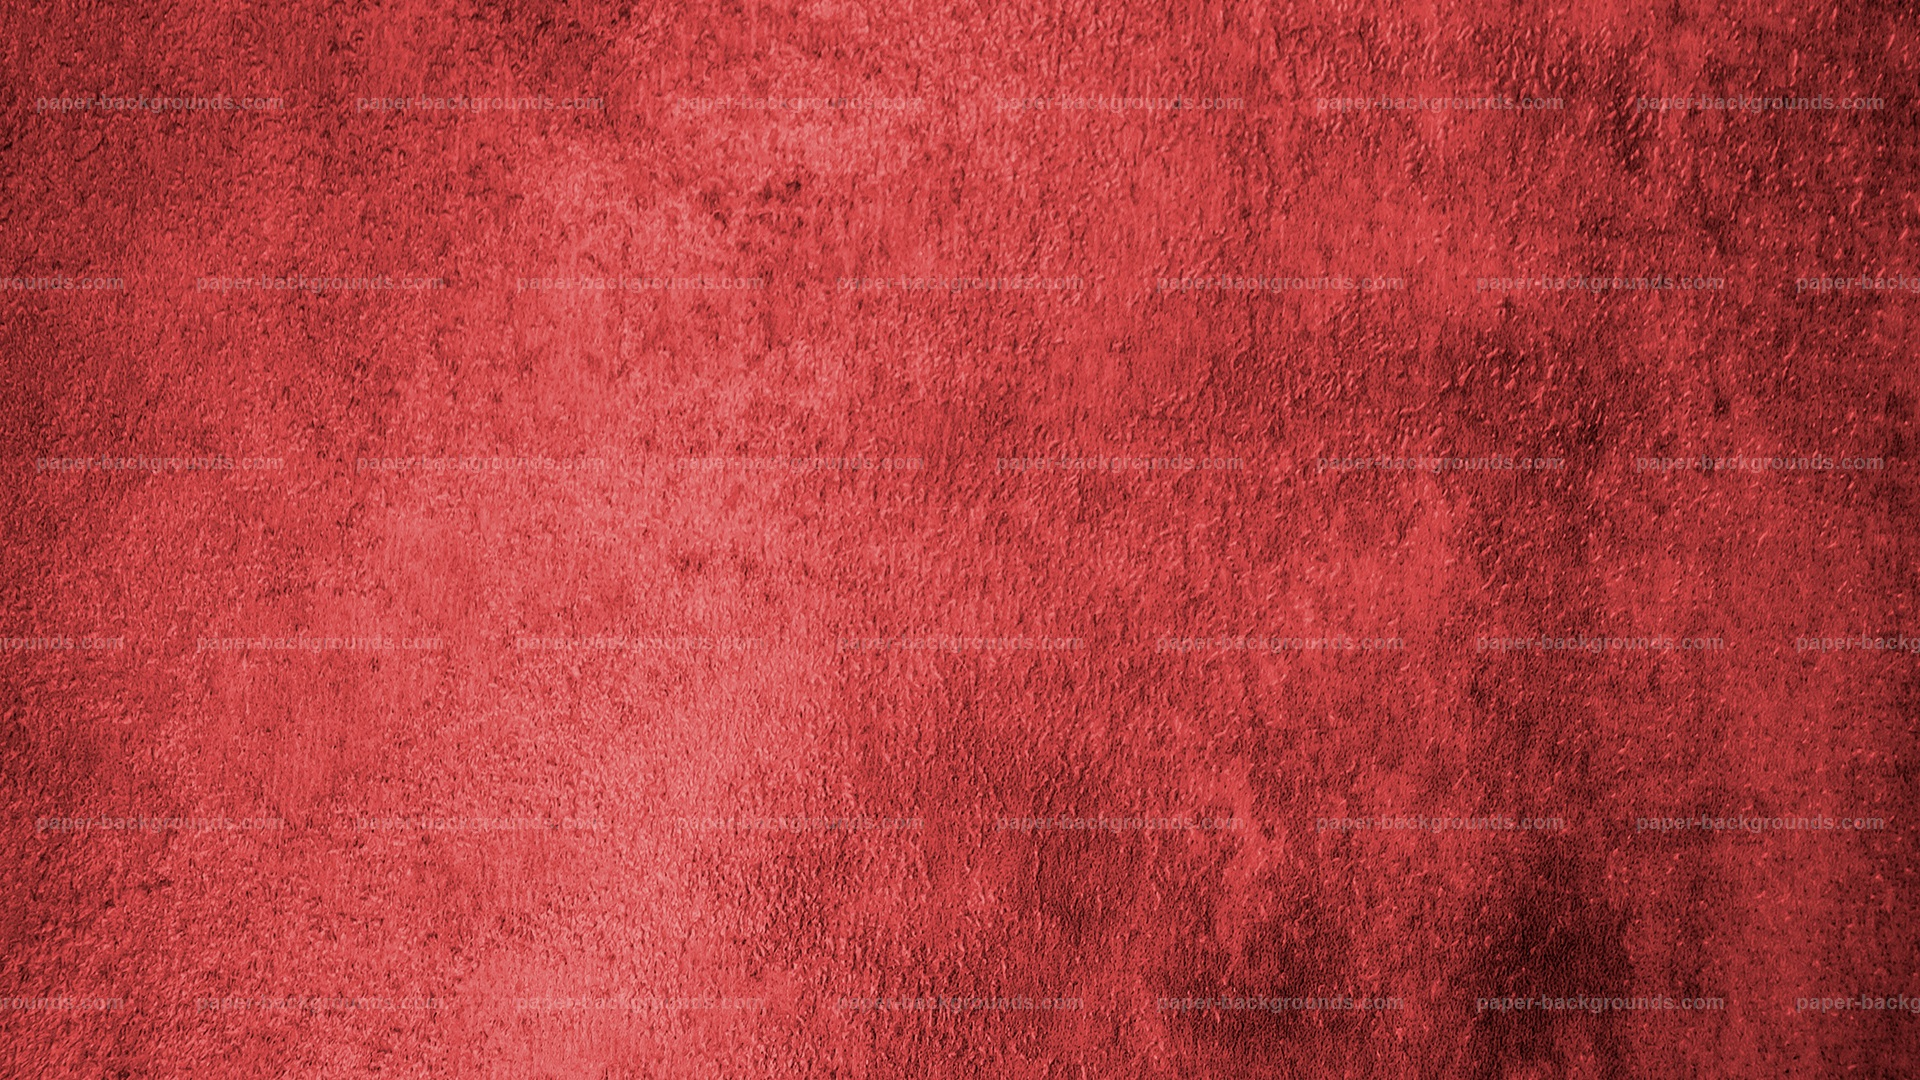 red textured background hd - photo #5